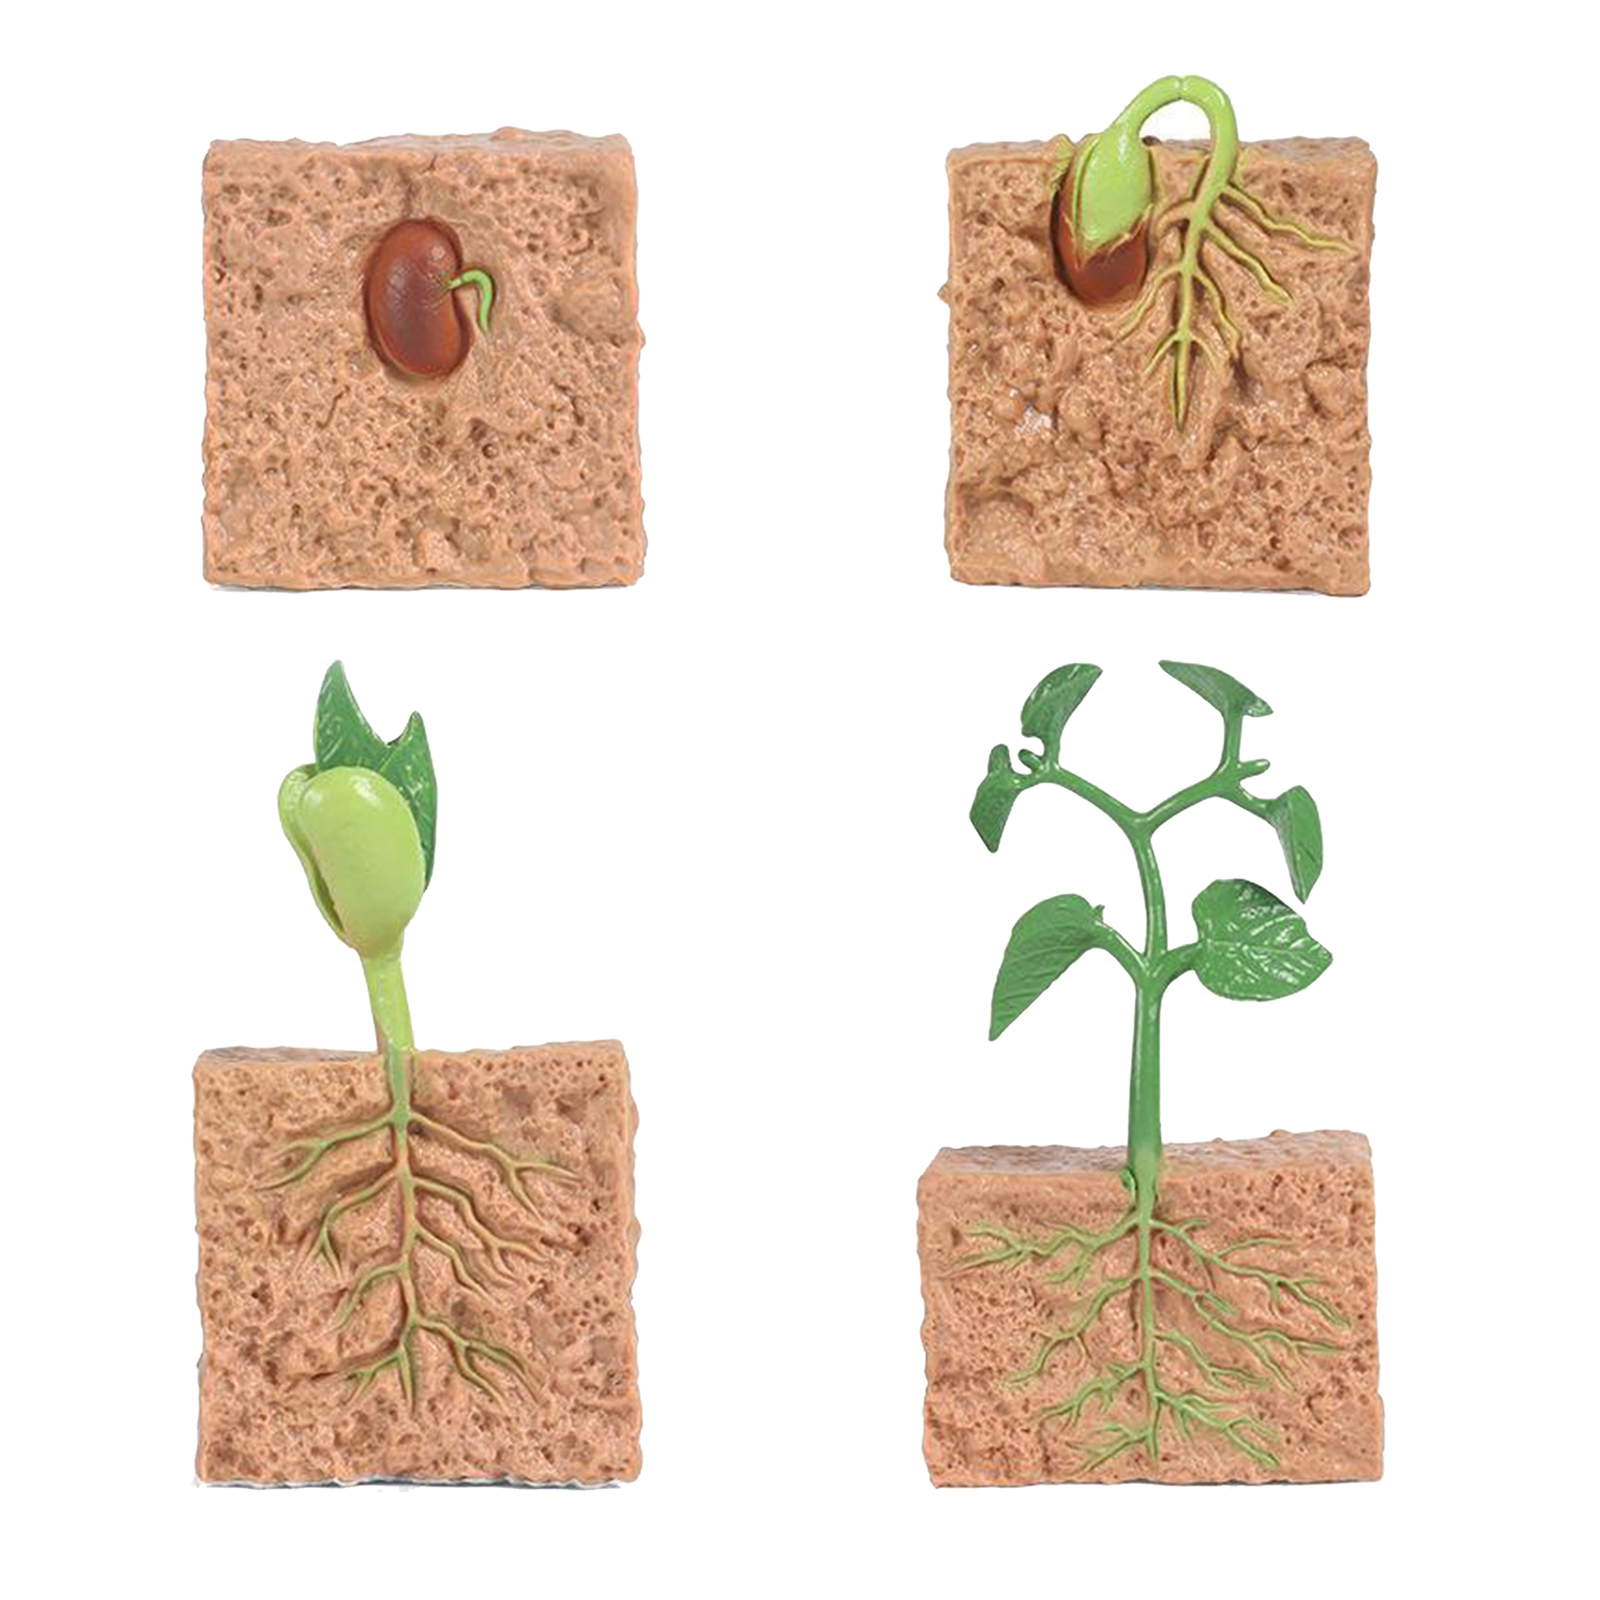 Kids Plant Seeds Growth Life Cycle Playset Cognitive Toys Teaching Aids 6